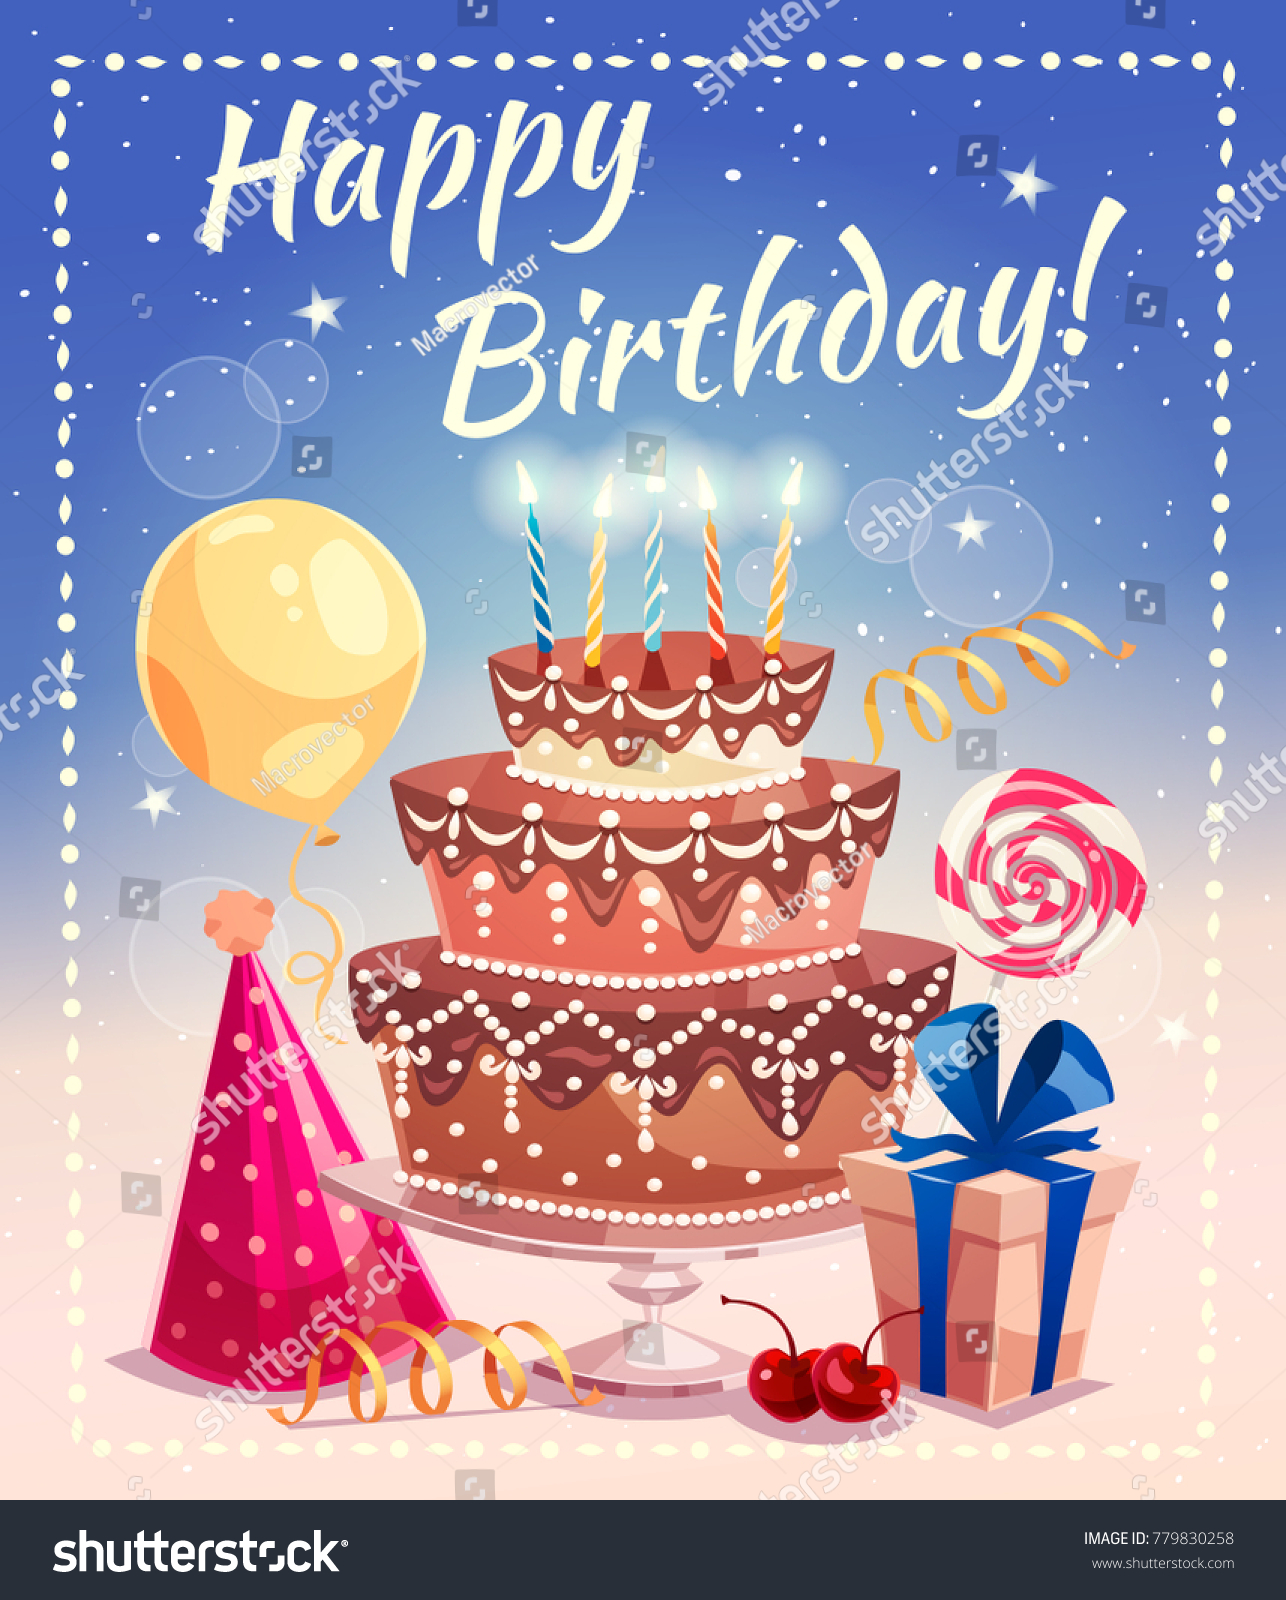 Happy Birthday Greeting Card Big Cake Stock Illustration Royalty